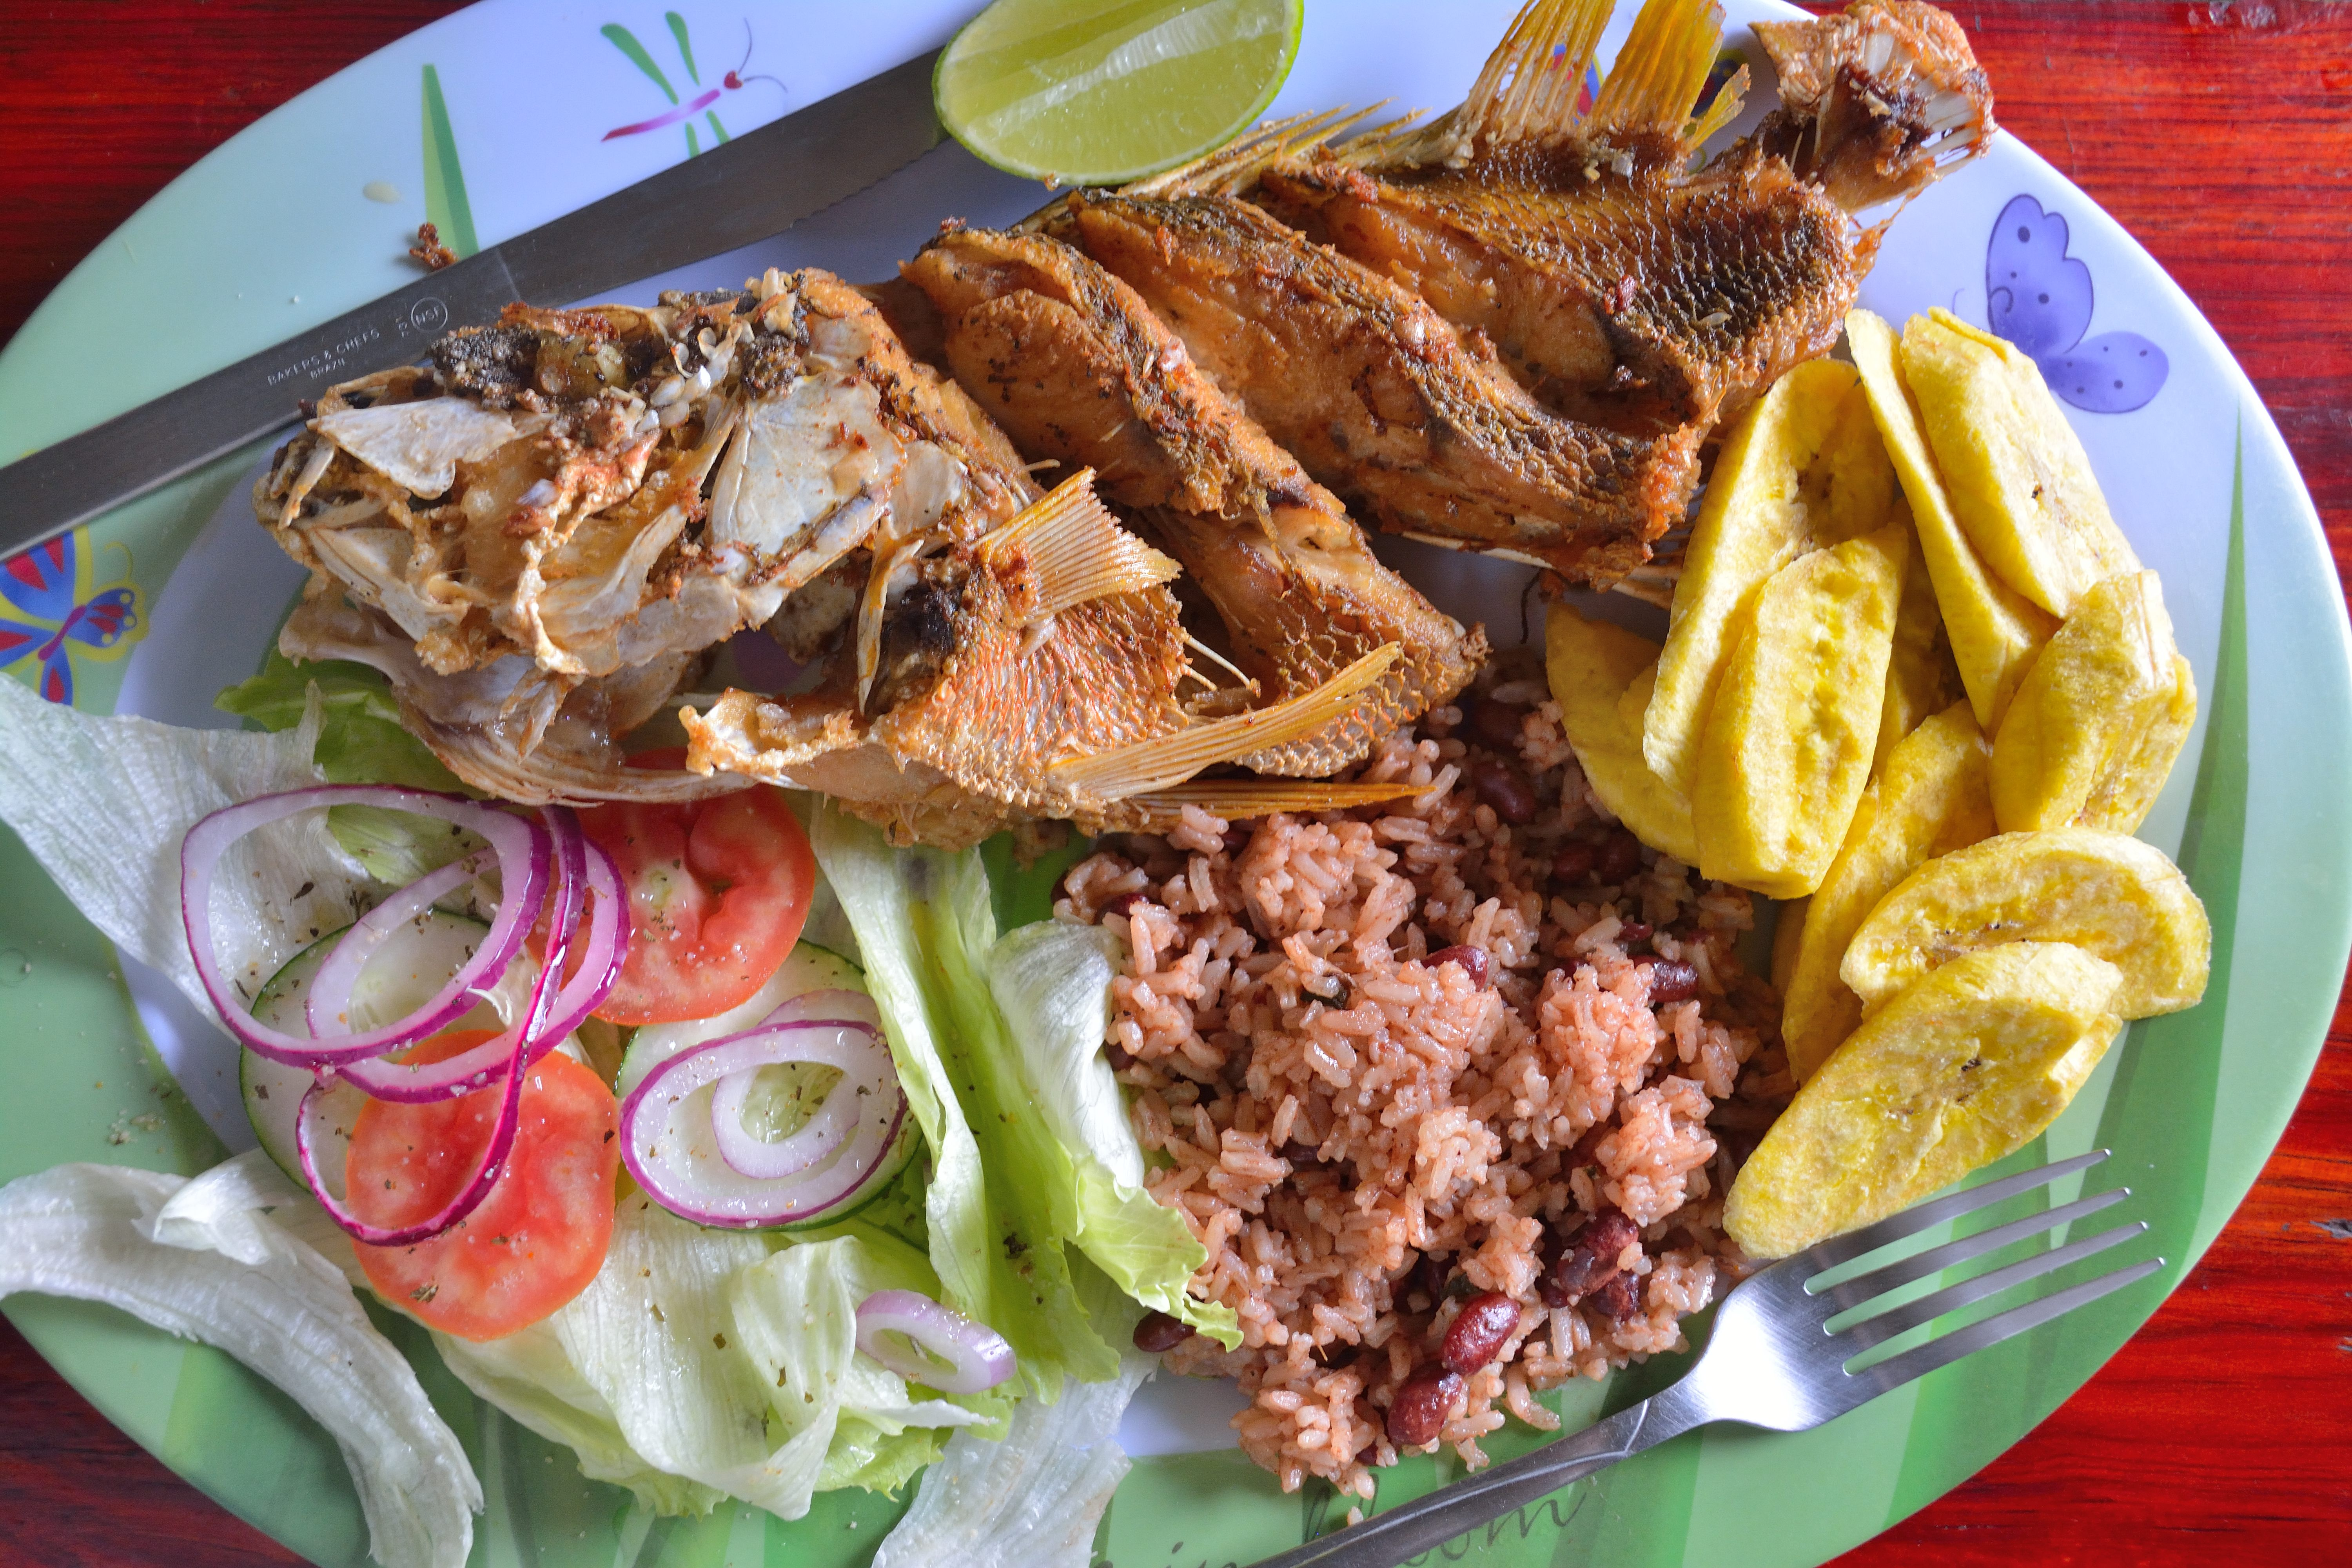 Red Snapper, rice & beans, fried plantains, and a salad - a local seafood plate courtesy of Sacrifice Restaurant in Punta Gorda, Roatan. – Manlio Martínez